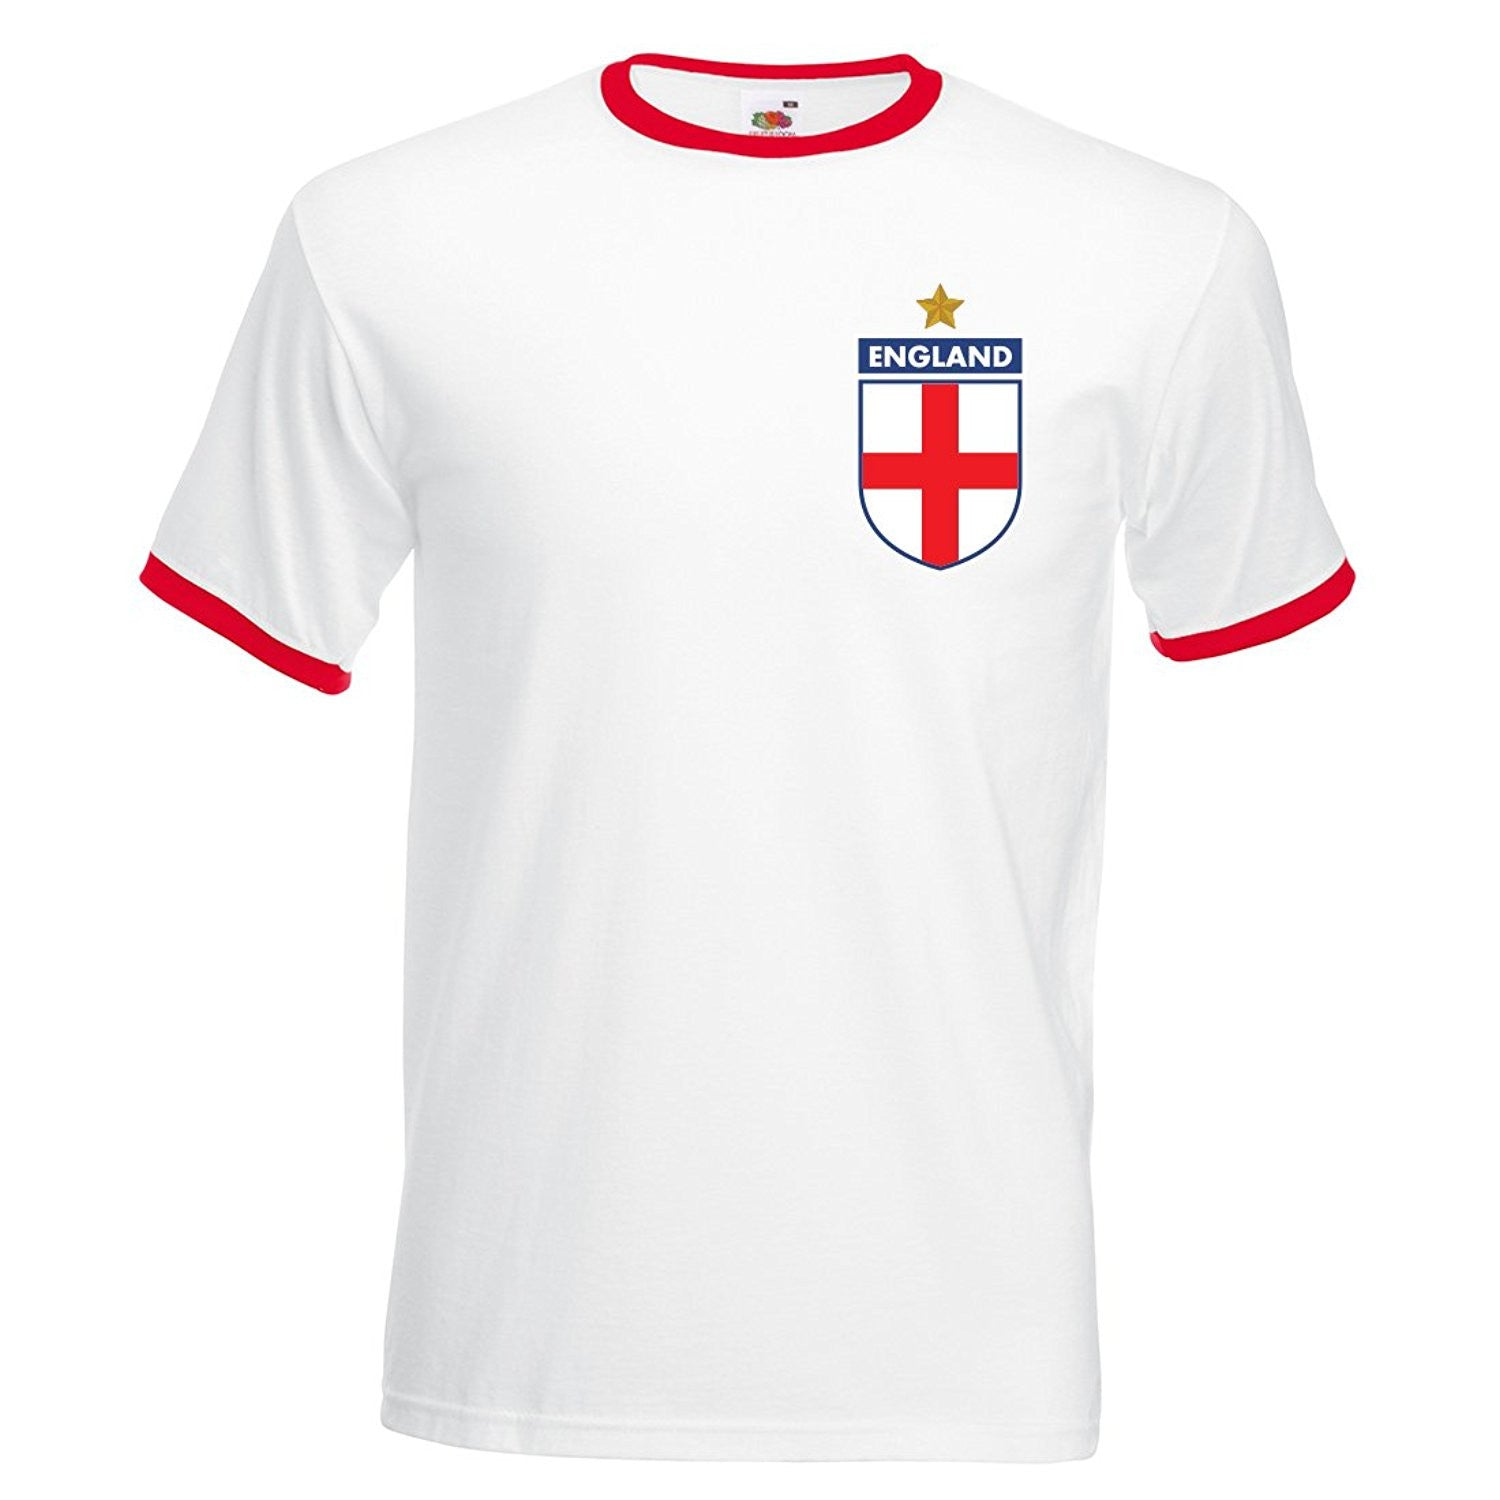 Adults CCCP Soviet Union Retro Football T-Shirt with Free Personalisation - Red / White Et0P5Njka7